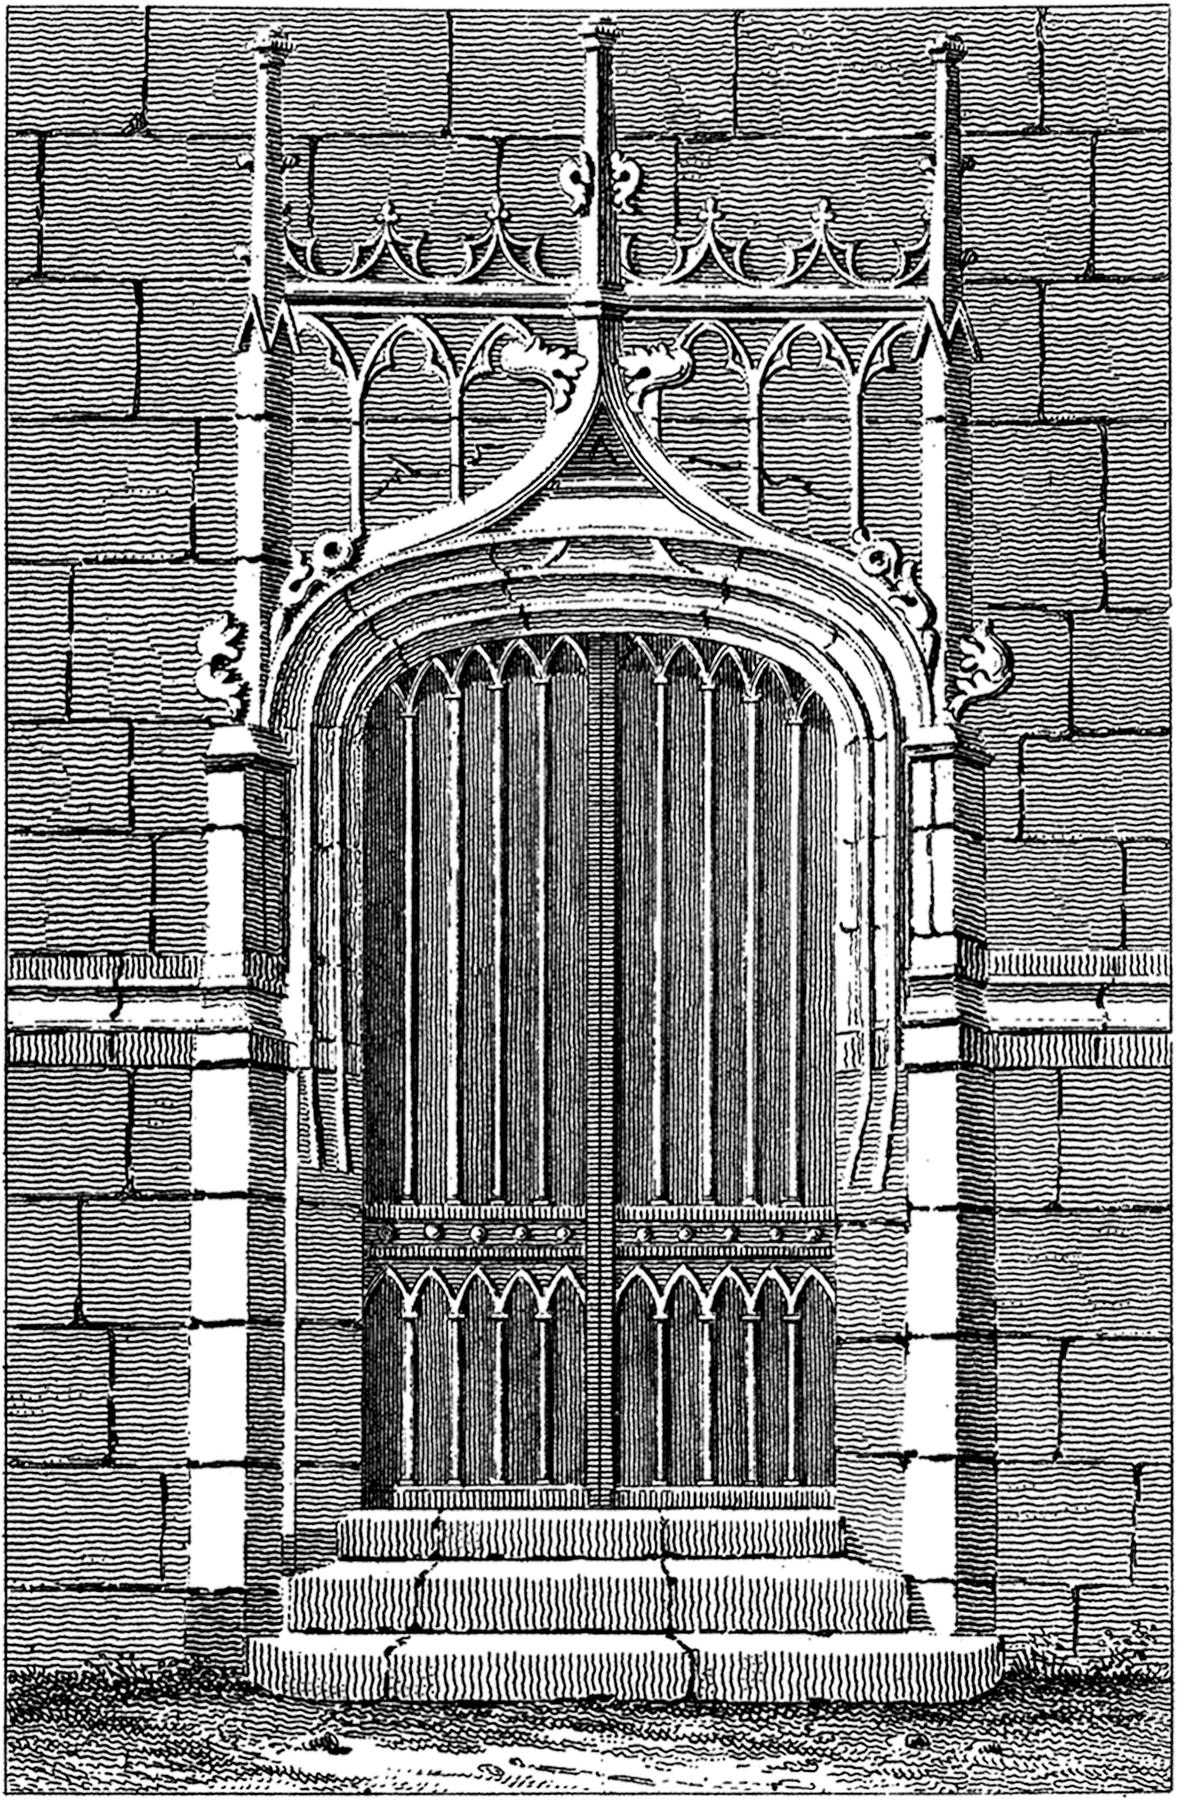 Antique Gothic Door Image  sc 1 st  The Graphics Fairy & Antique Gothic Door Image! - The Graphics Fairy